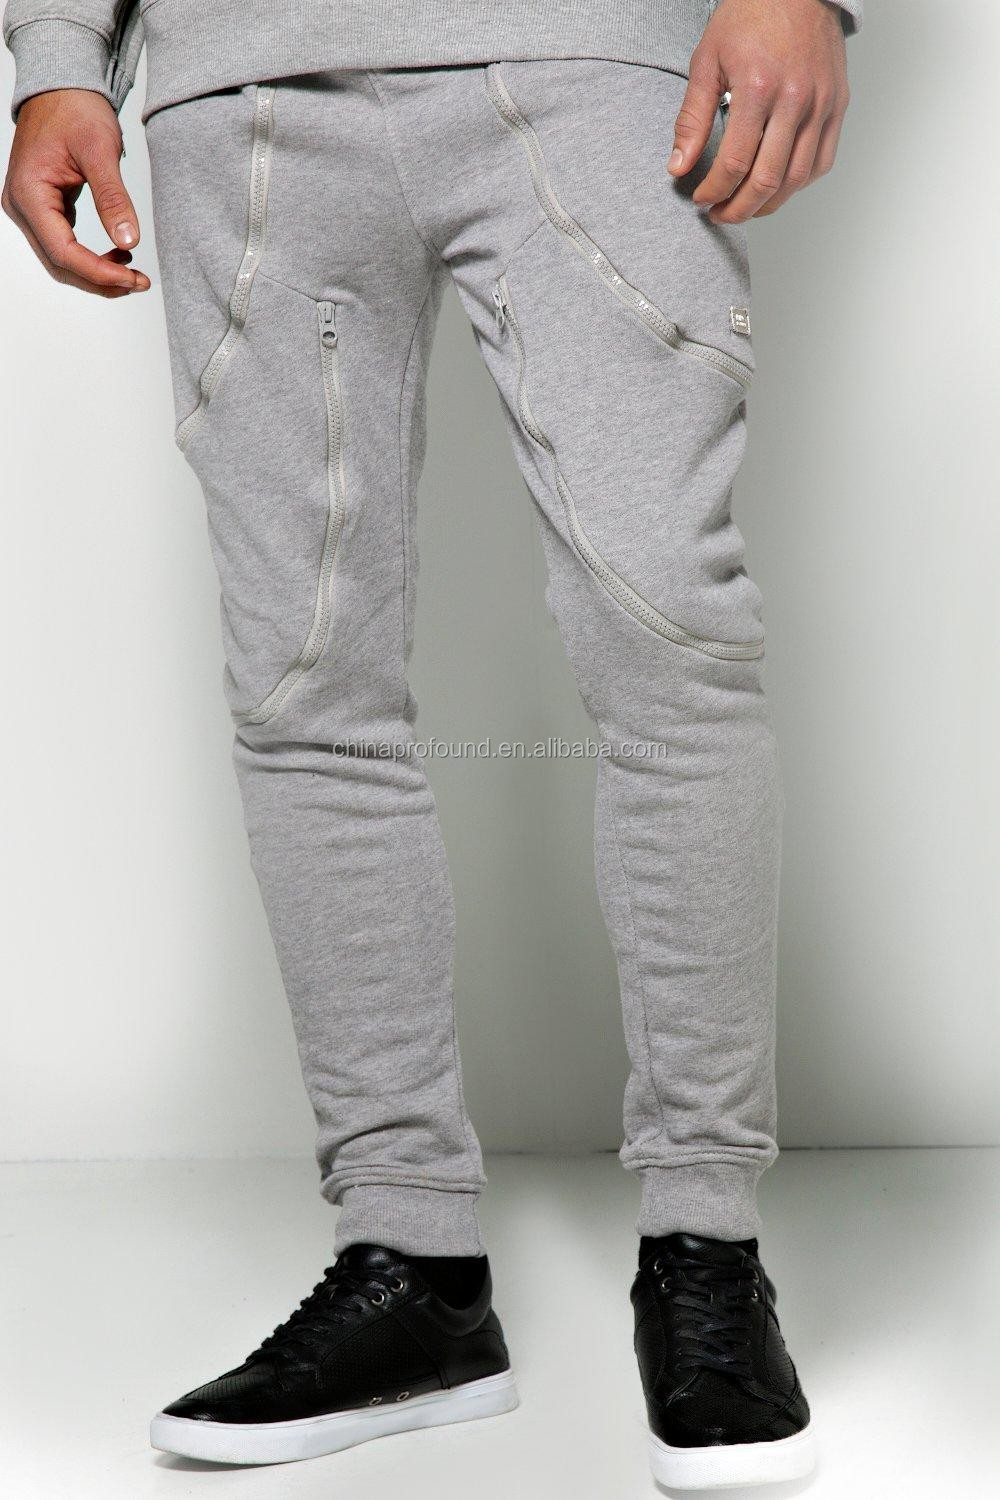 100% cotton french terry plain zipper sports sweat pants for men